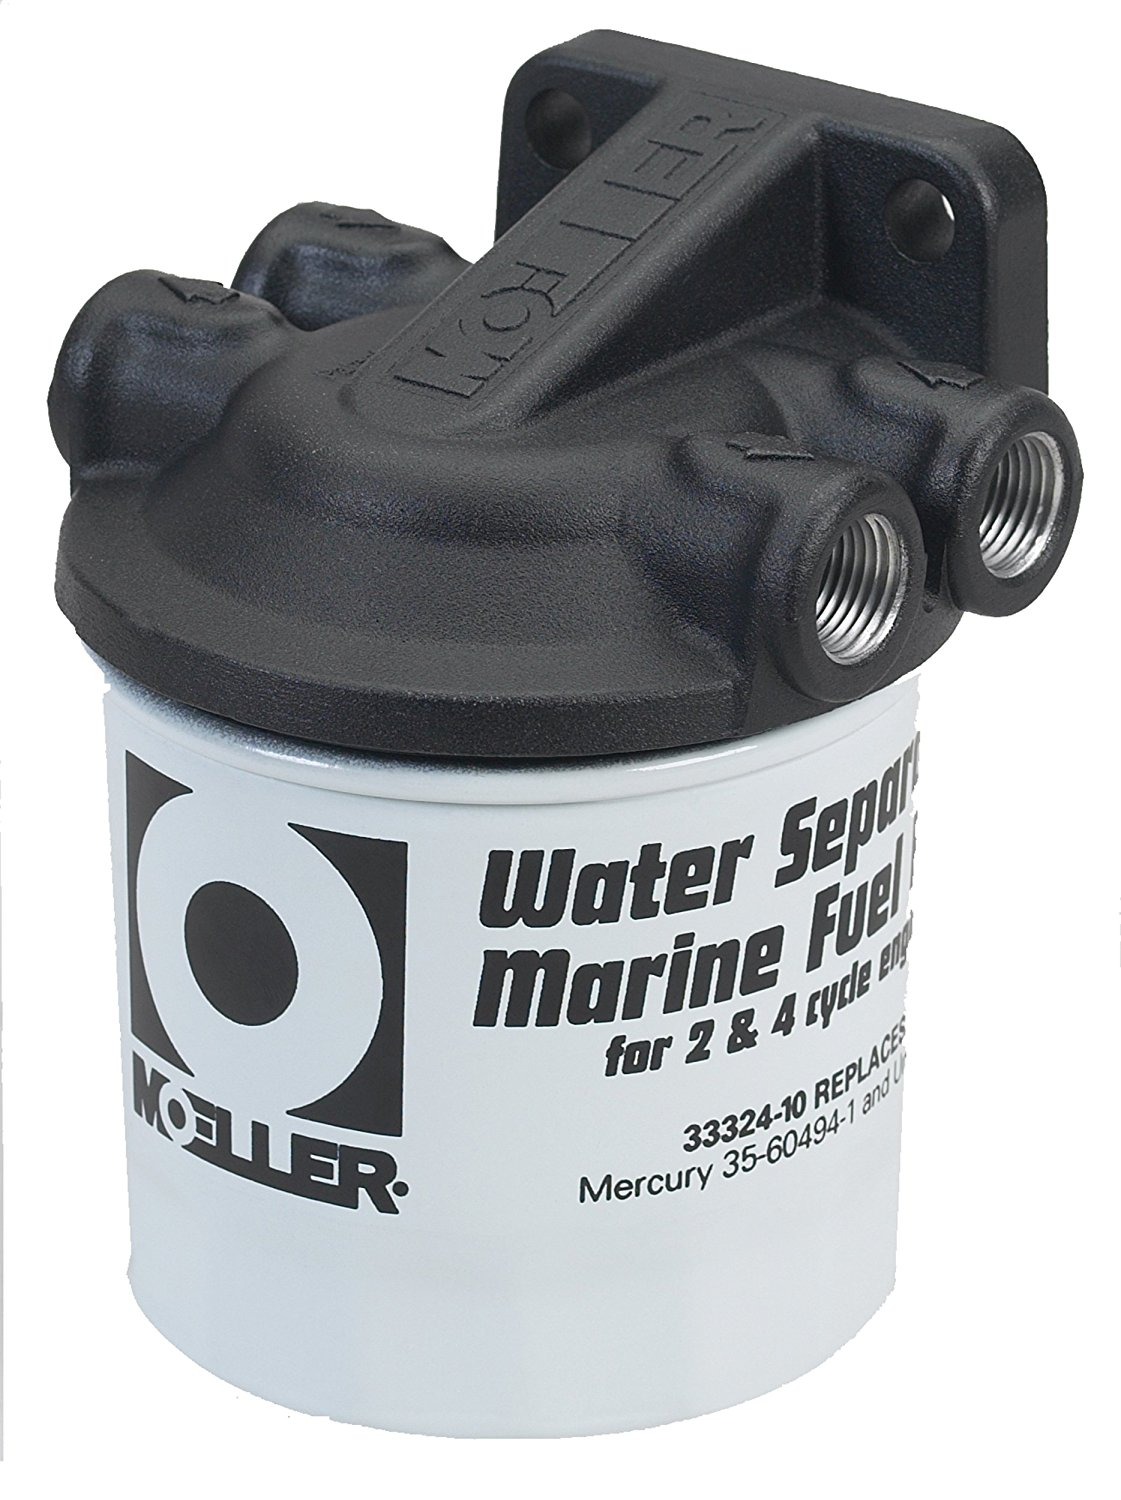 Moeller Water Separating Fuel Filter (Johnson/Evinrude), Fuel filter for  Johnson and Evinrude outboard motors By Moeller Marine - Walmart.com